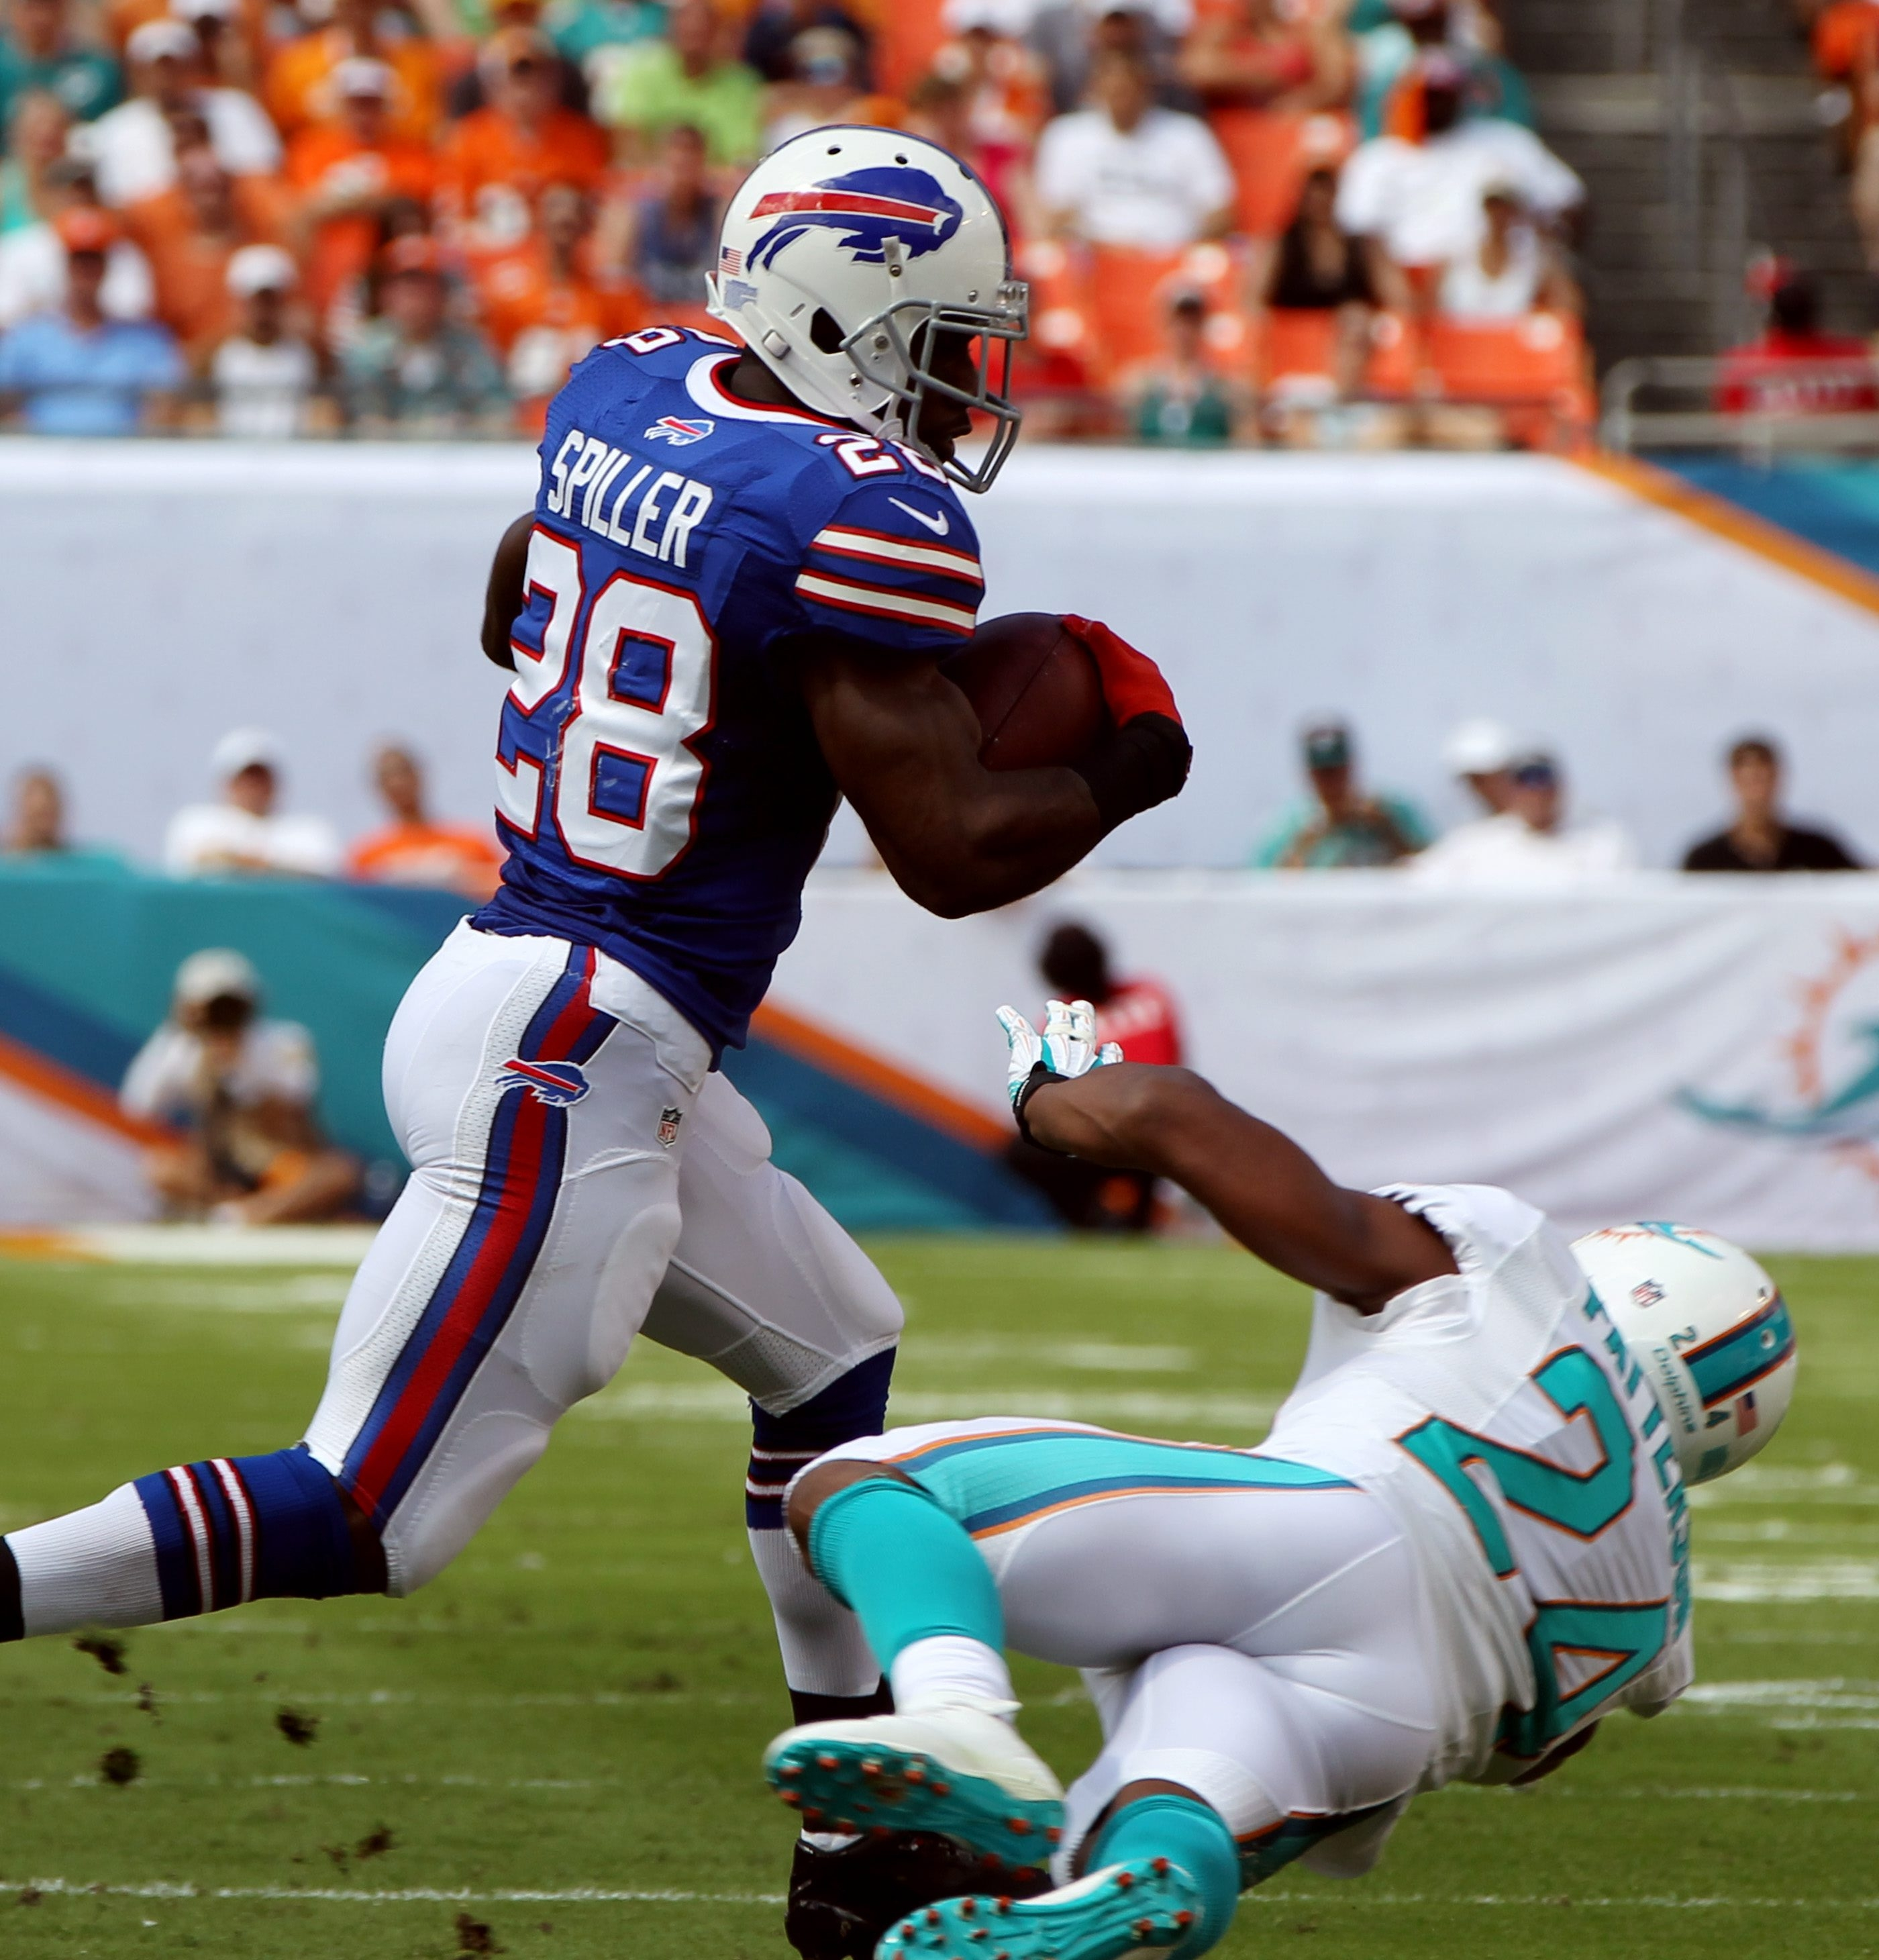 Buffalo Bills running back C.J. Spiller (28) will probably not face the New Orleans Saints on Sunday due to a sore ankle.